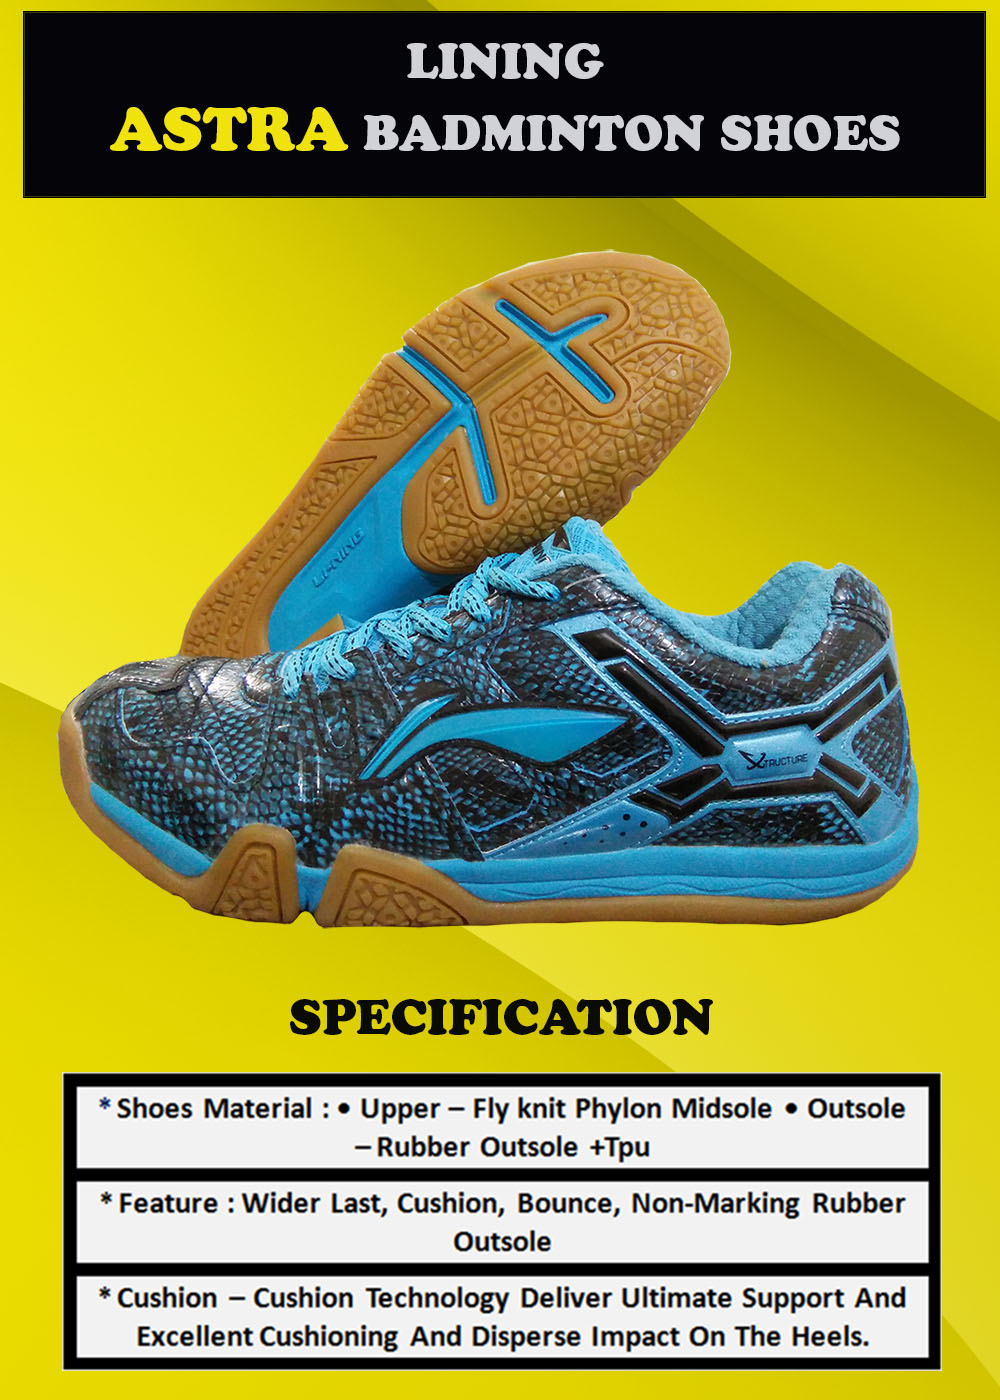 LI NING Astra Badminton Shoes